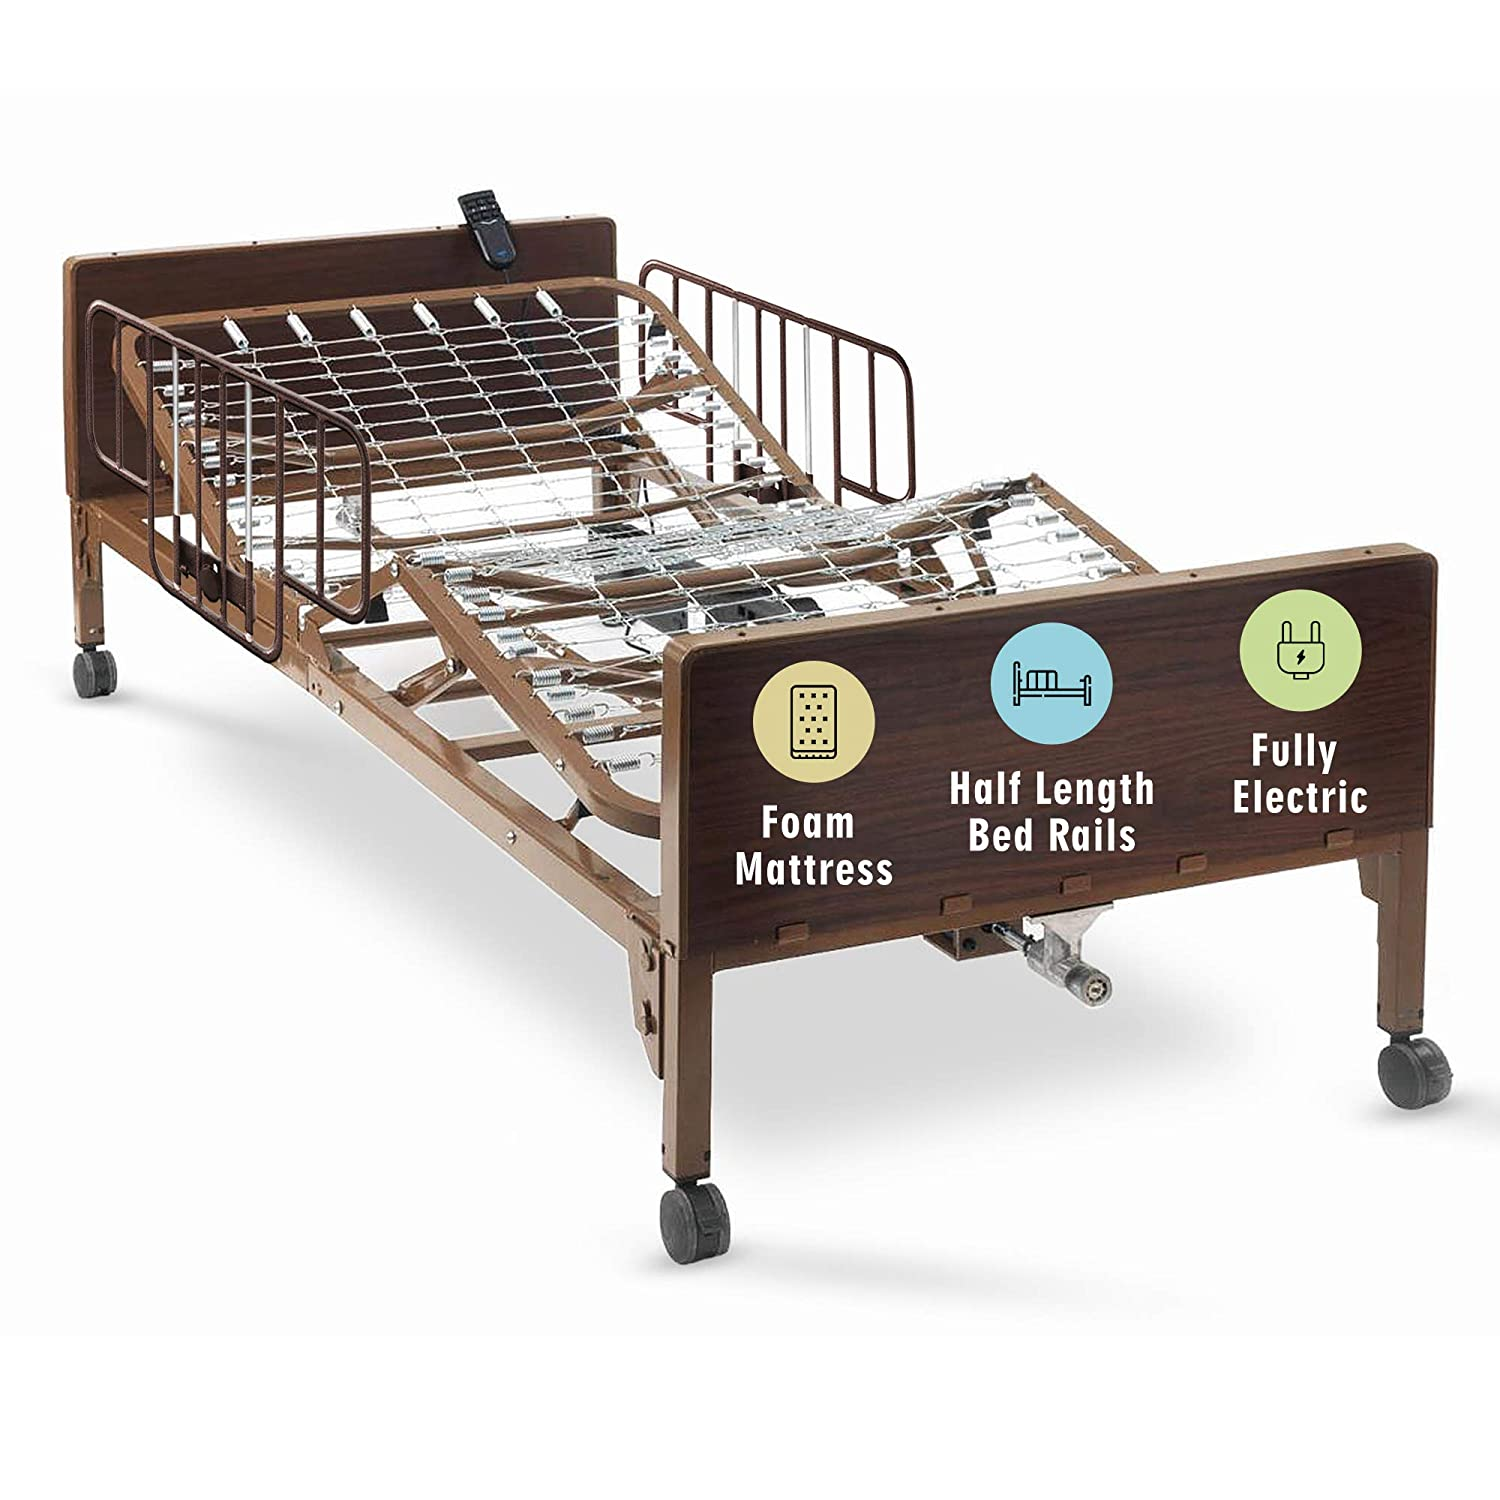 Full Electric Hospital Bed with Premium Foam Mattress and Half Rails Included - for Home Care Use and Medical Facilities - Fully Adjustable, Easy Transport Casters, Remote - 80